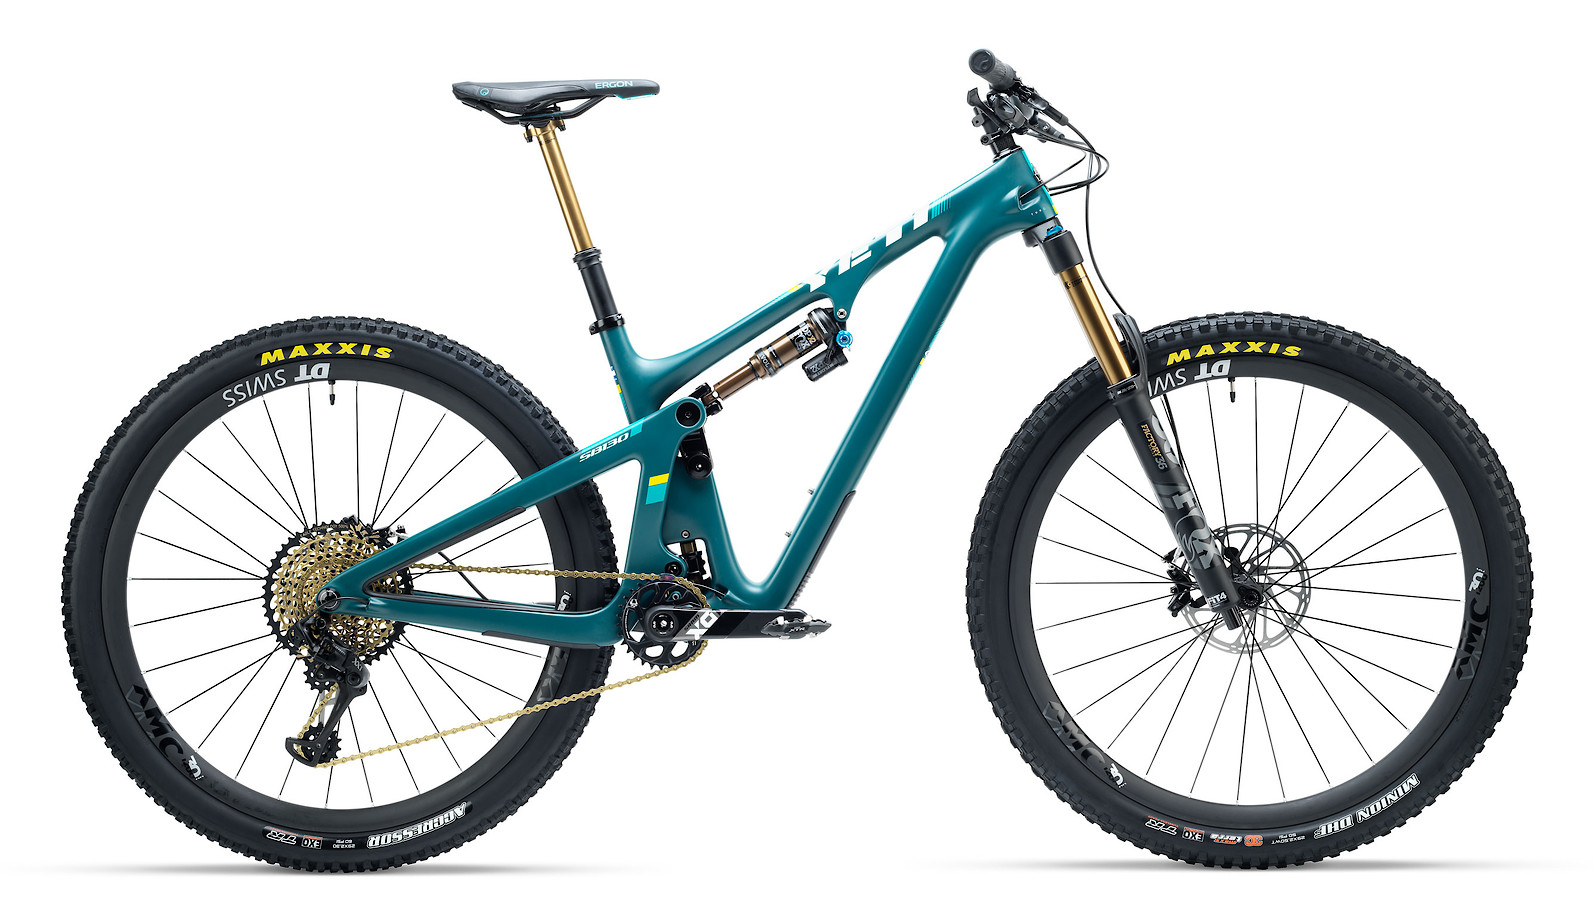 547a2f200be 2019 Yeti SB130 TURQ XX1 - Reviews, Comparisons, Specs - Mountain ...